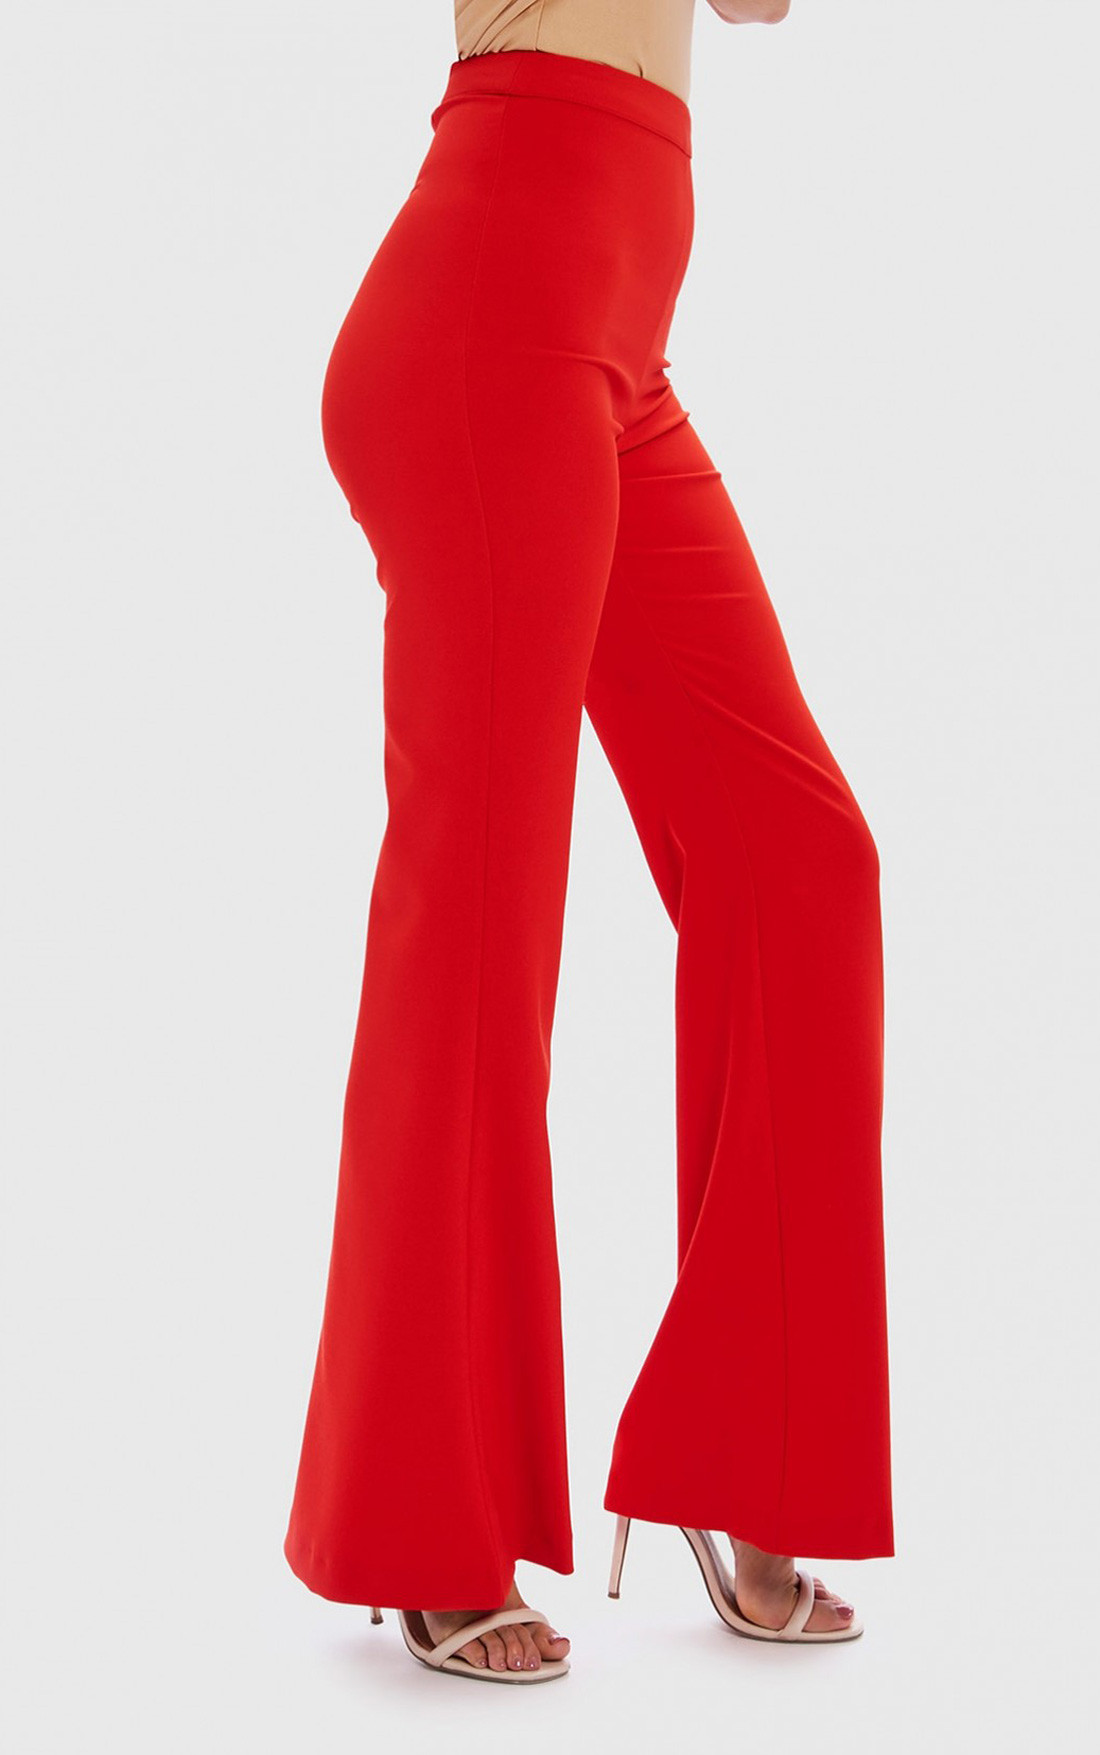 Forever Unique - Tess Red Wide Leg Trousers (WF8208)